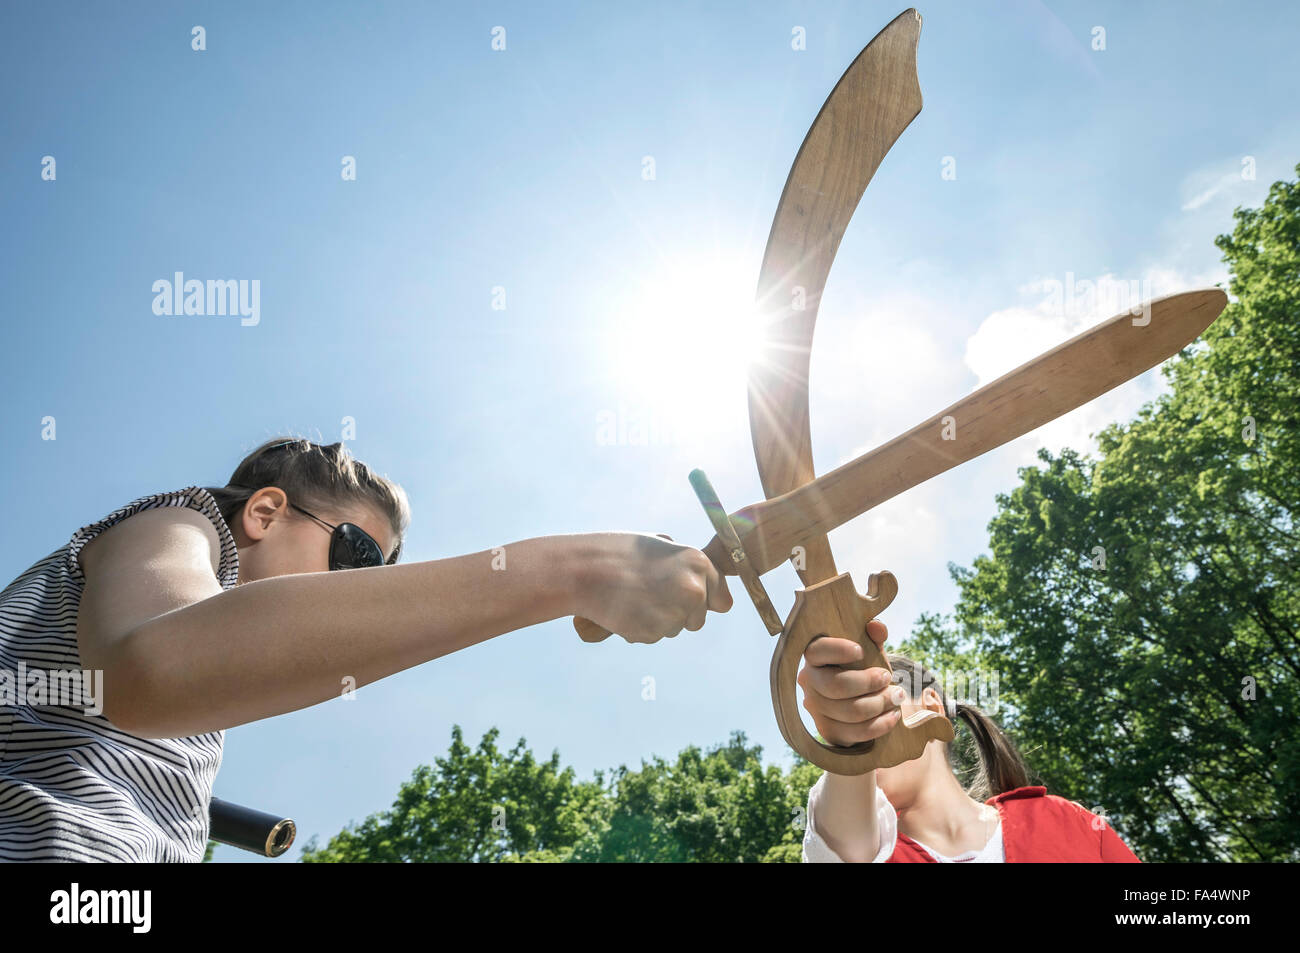 Low angle view of two girls pretending as pirates fighting with swords in adventure playground, Bavaria, Germany - Stock Image